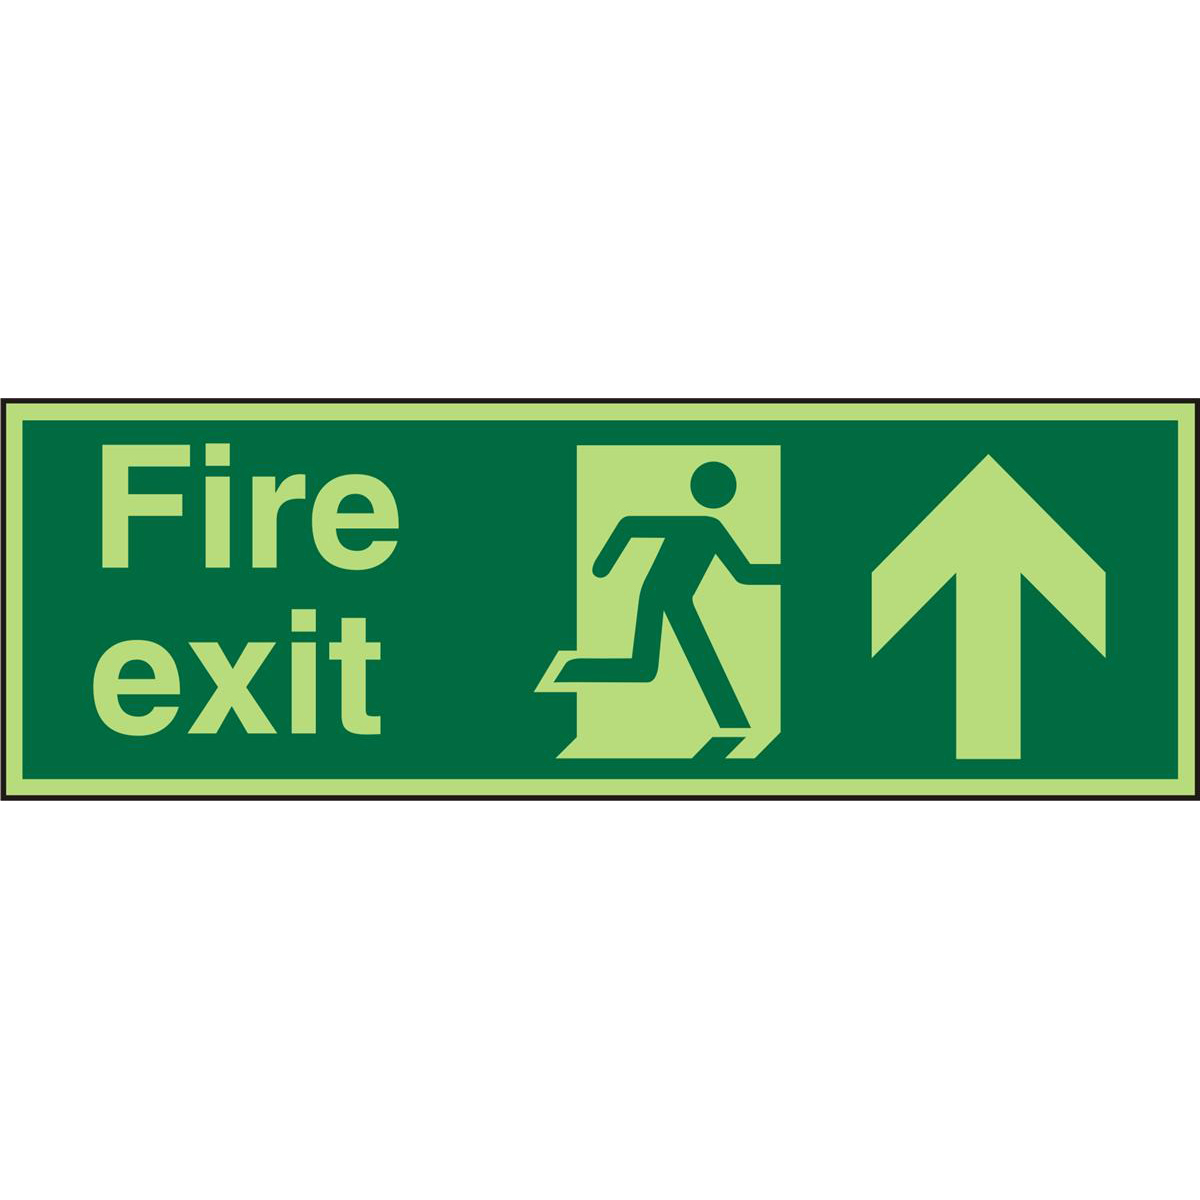 PhotolumSign 2mm 450x150 FireExit Man Running Right&Arrow Up Ref PACSP129450x150 Up to 10 Day Leadtime